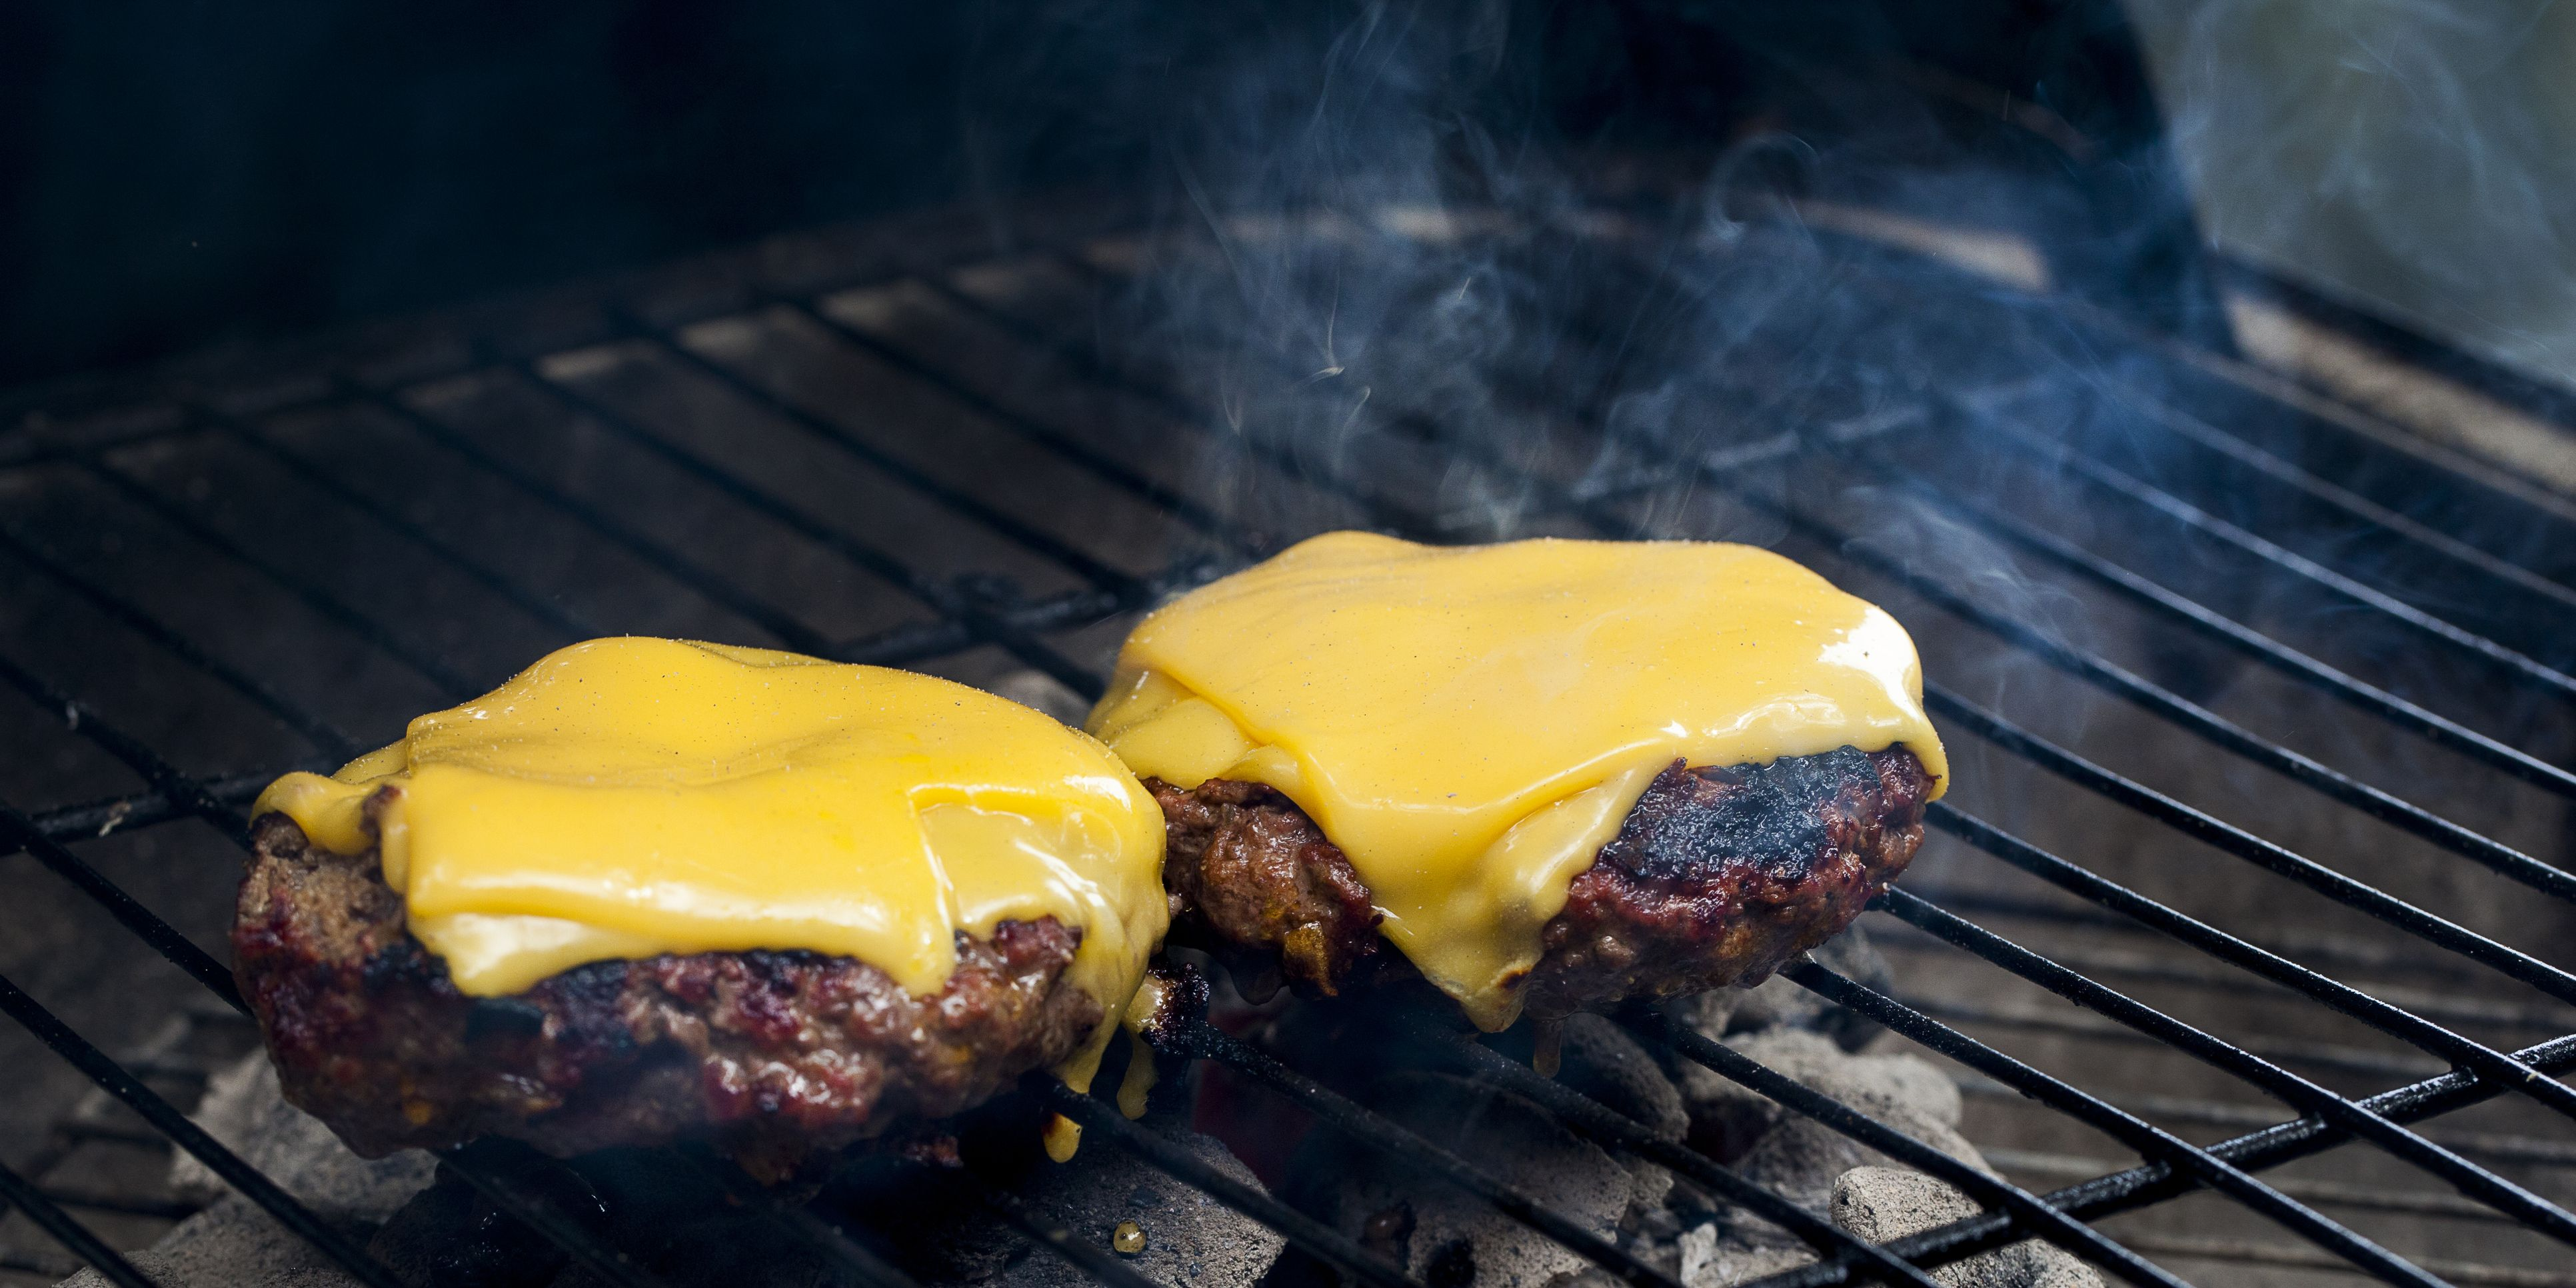 Burgers on Charcoal Grill